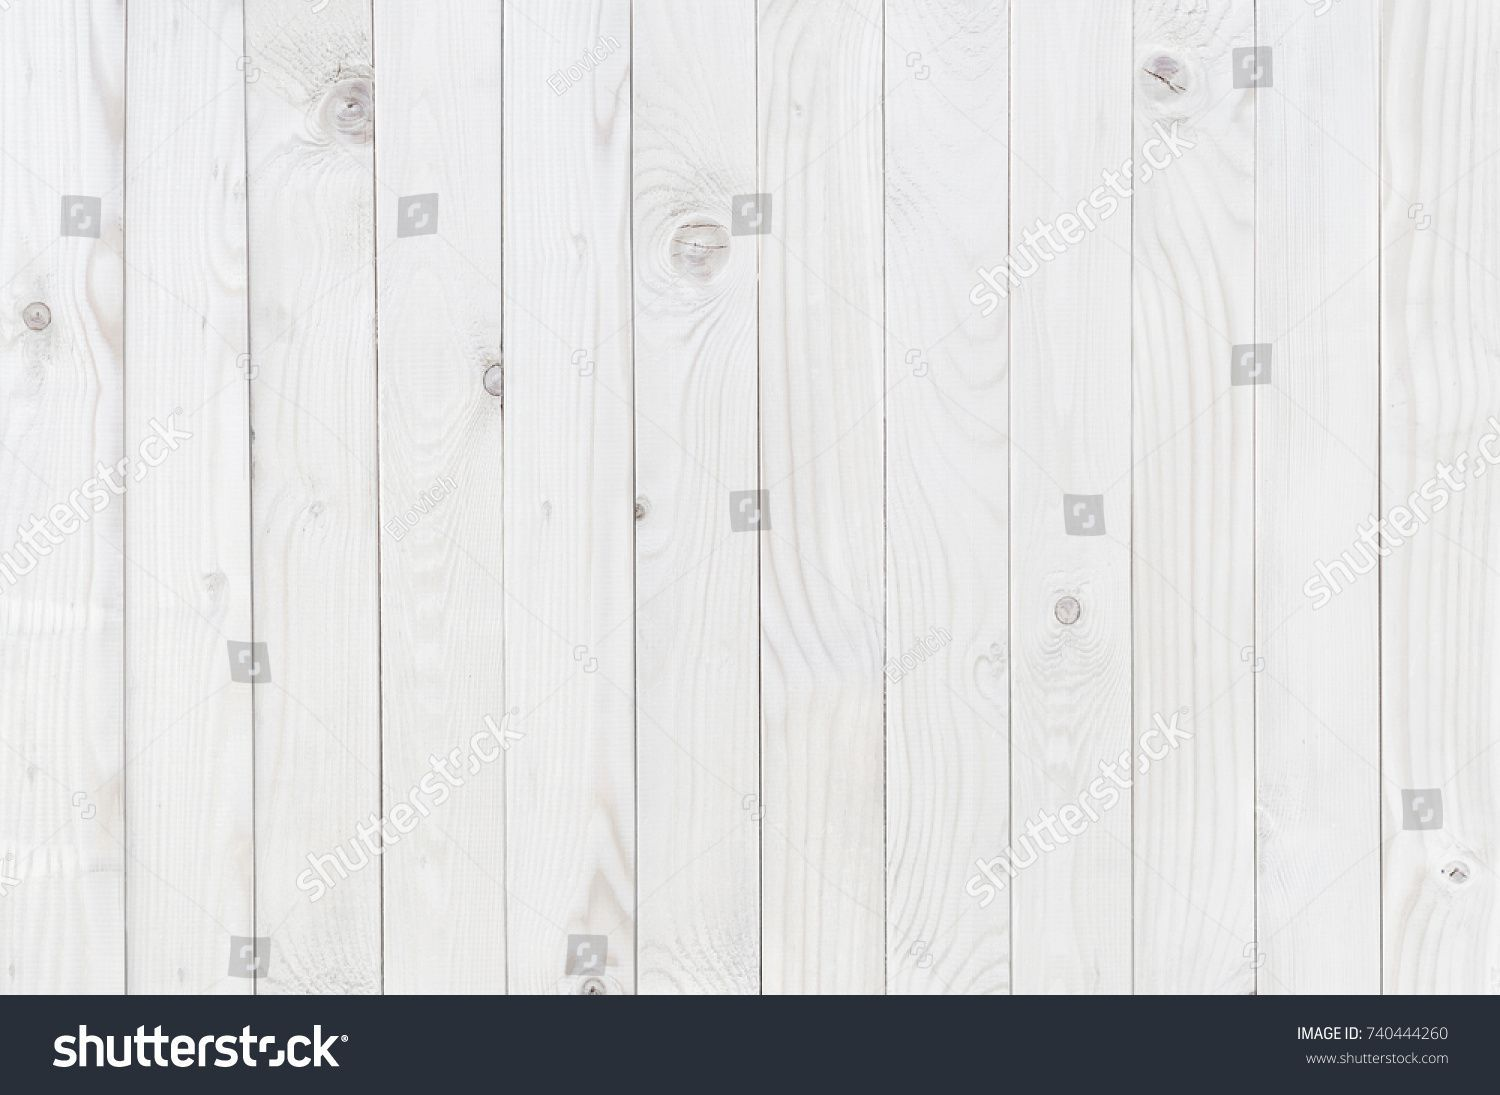 white wood texture background, table top view texture#wood#white#background #woodtexturebackground white wood texture background, table top view texture#wood#white#background #woodtexturebackground